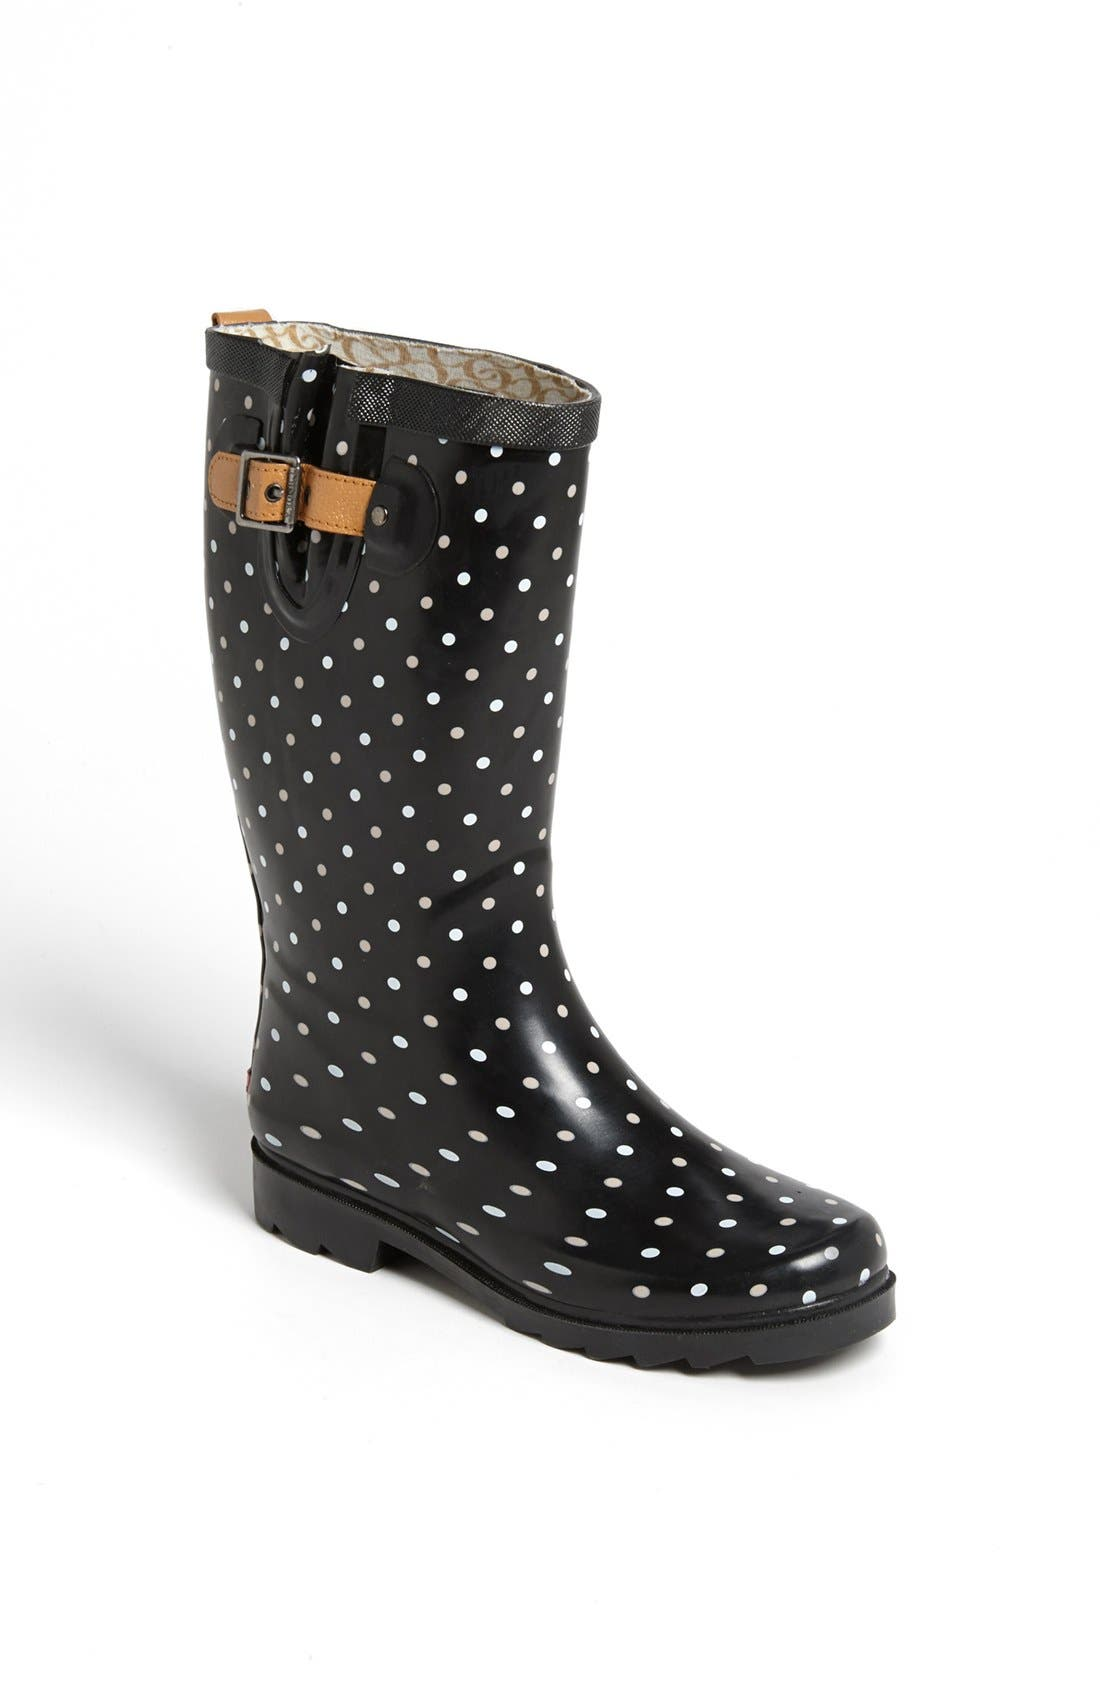 Alternate Image 1 Selected - Chooka 'Classical Dot' Rain Boot (Women)